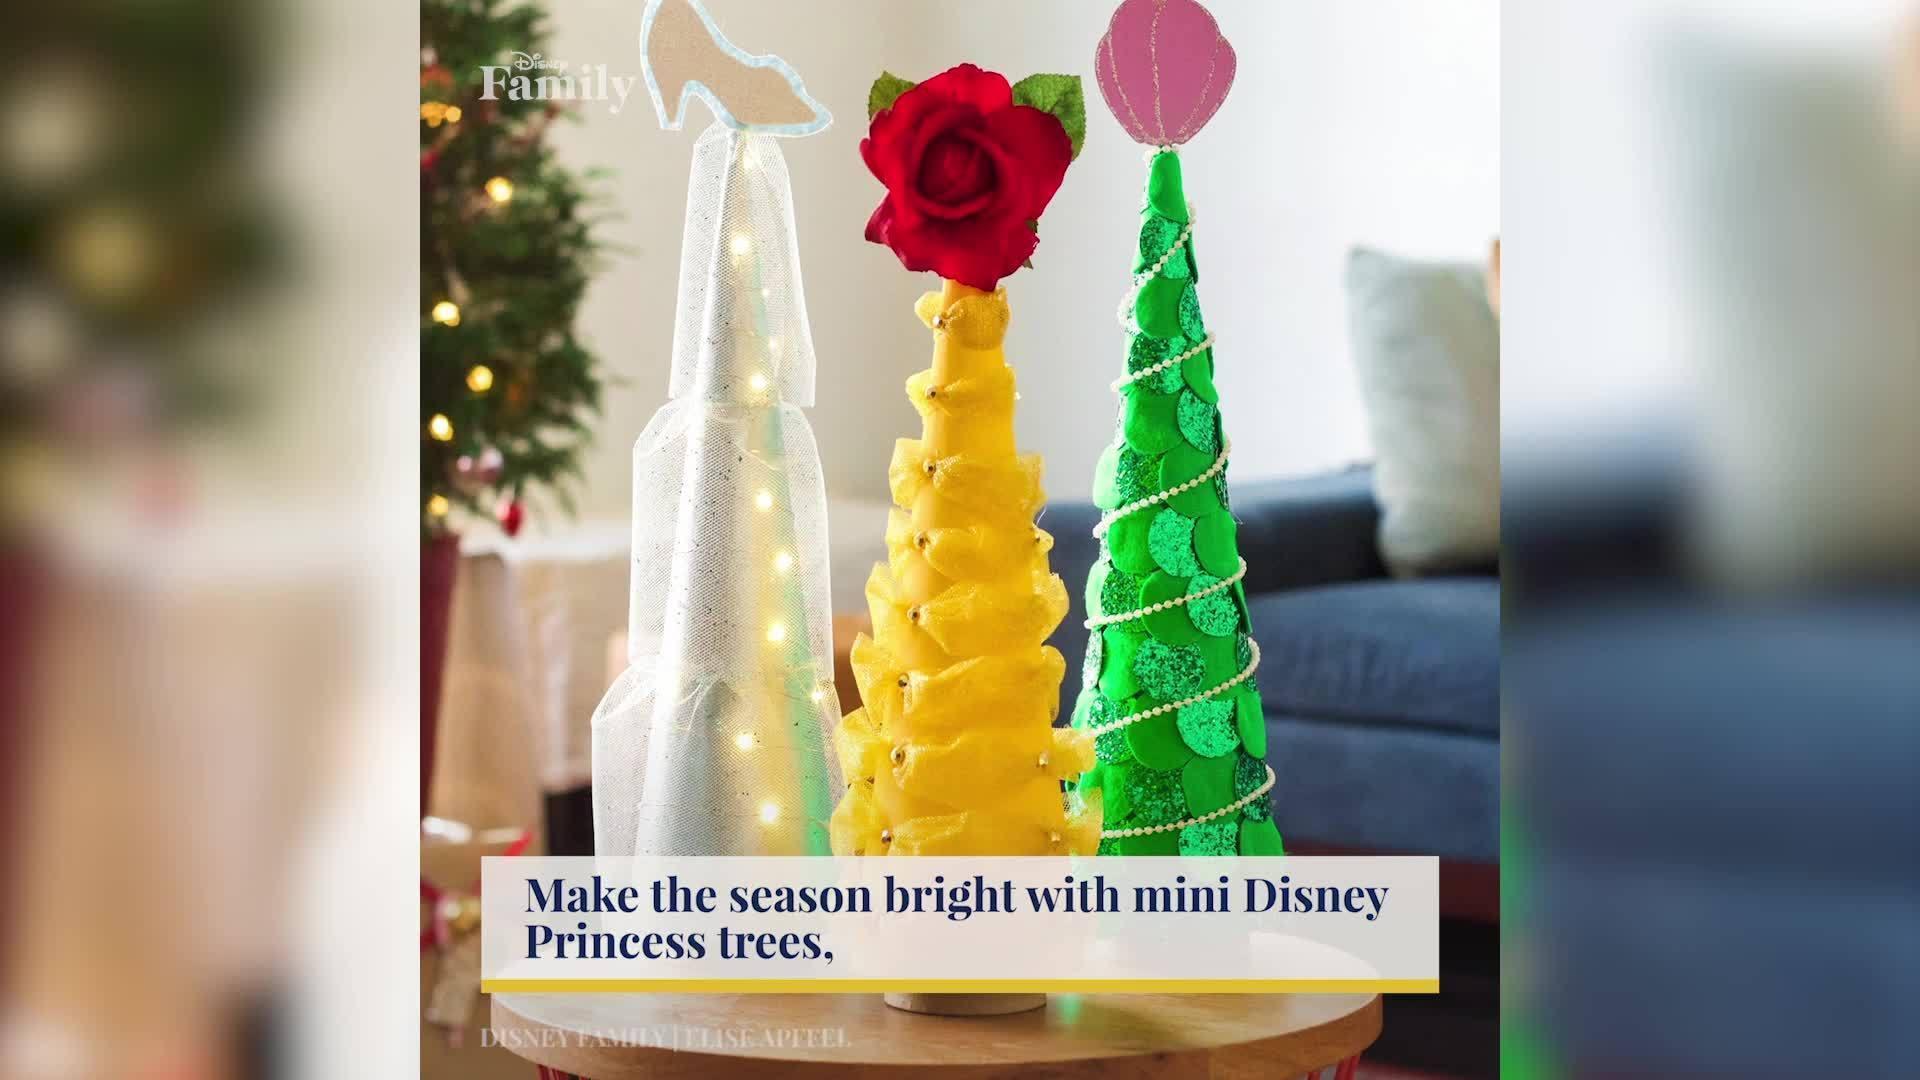 Mini Trees for Your Little Princess | Disney Family